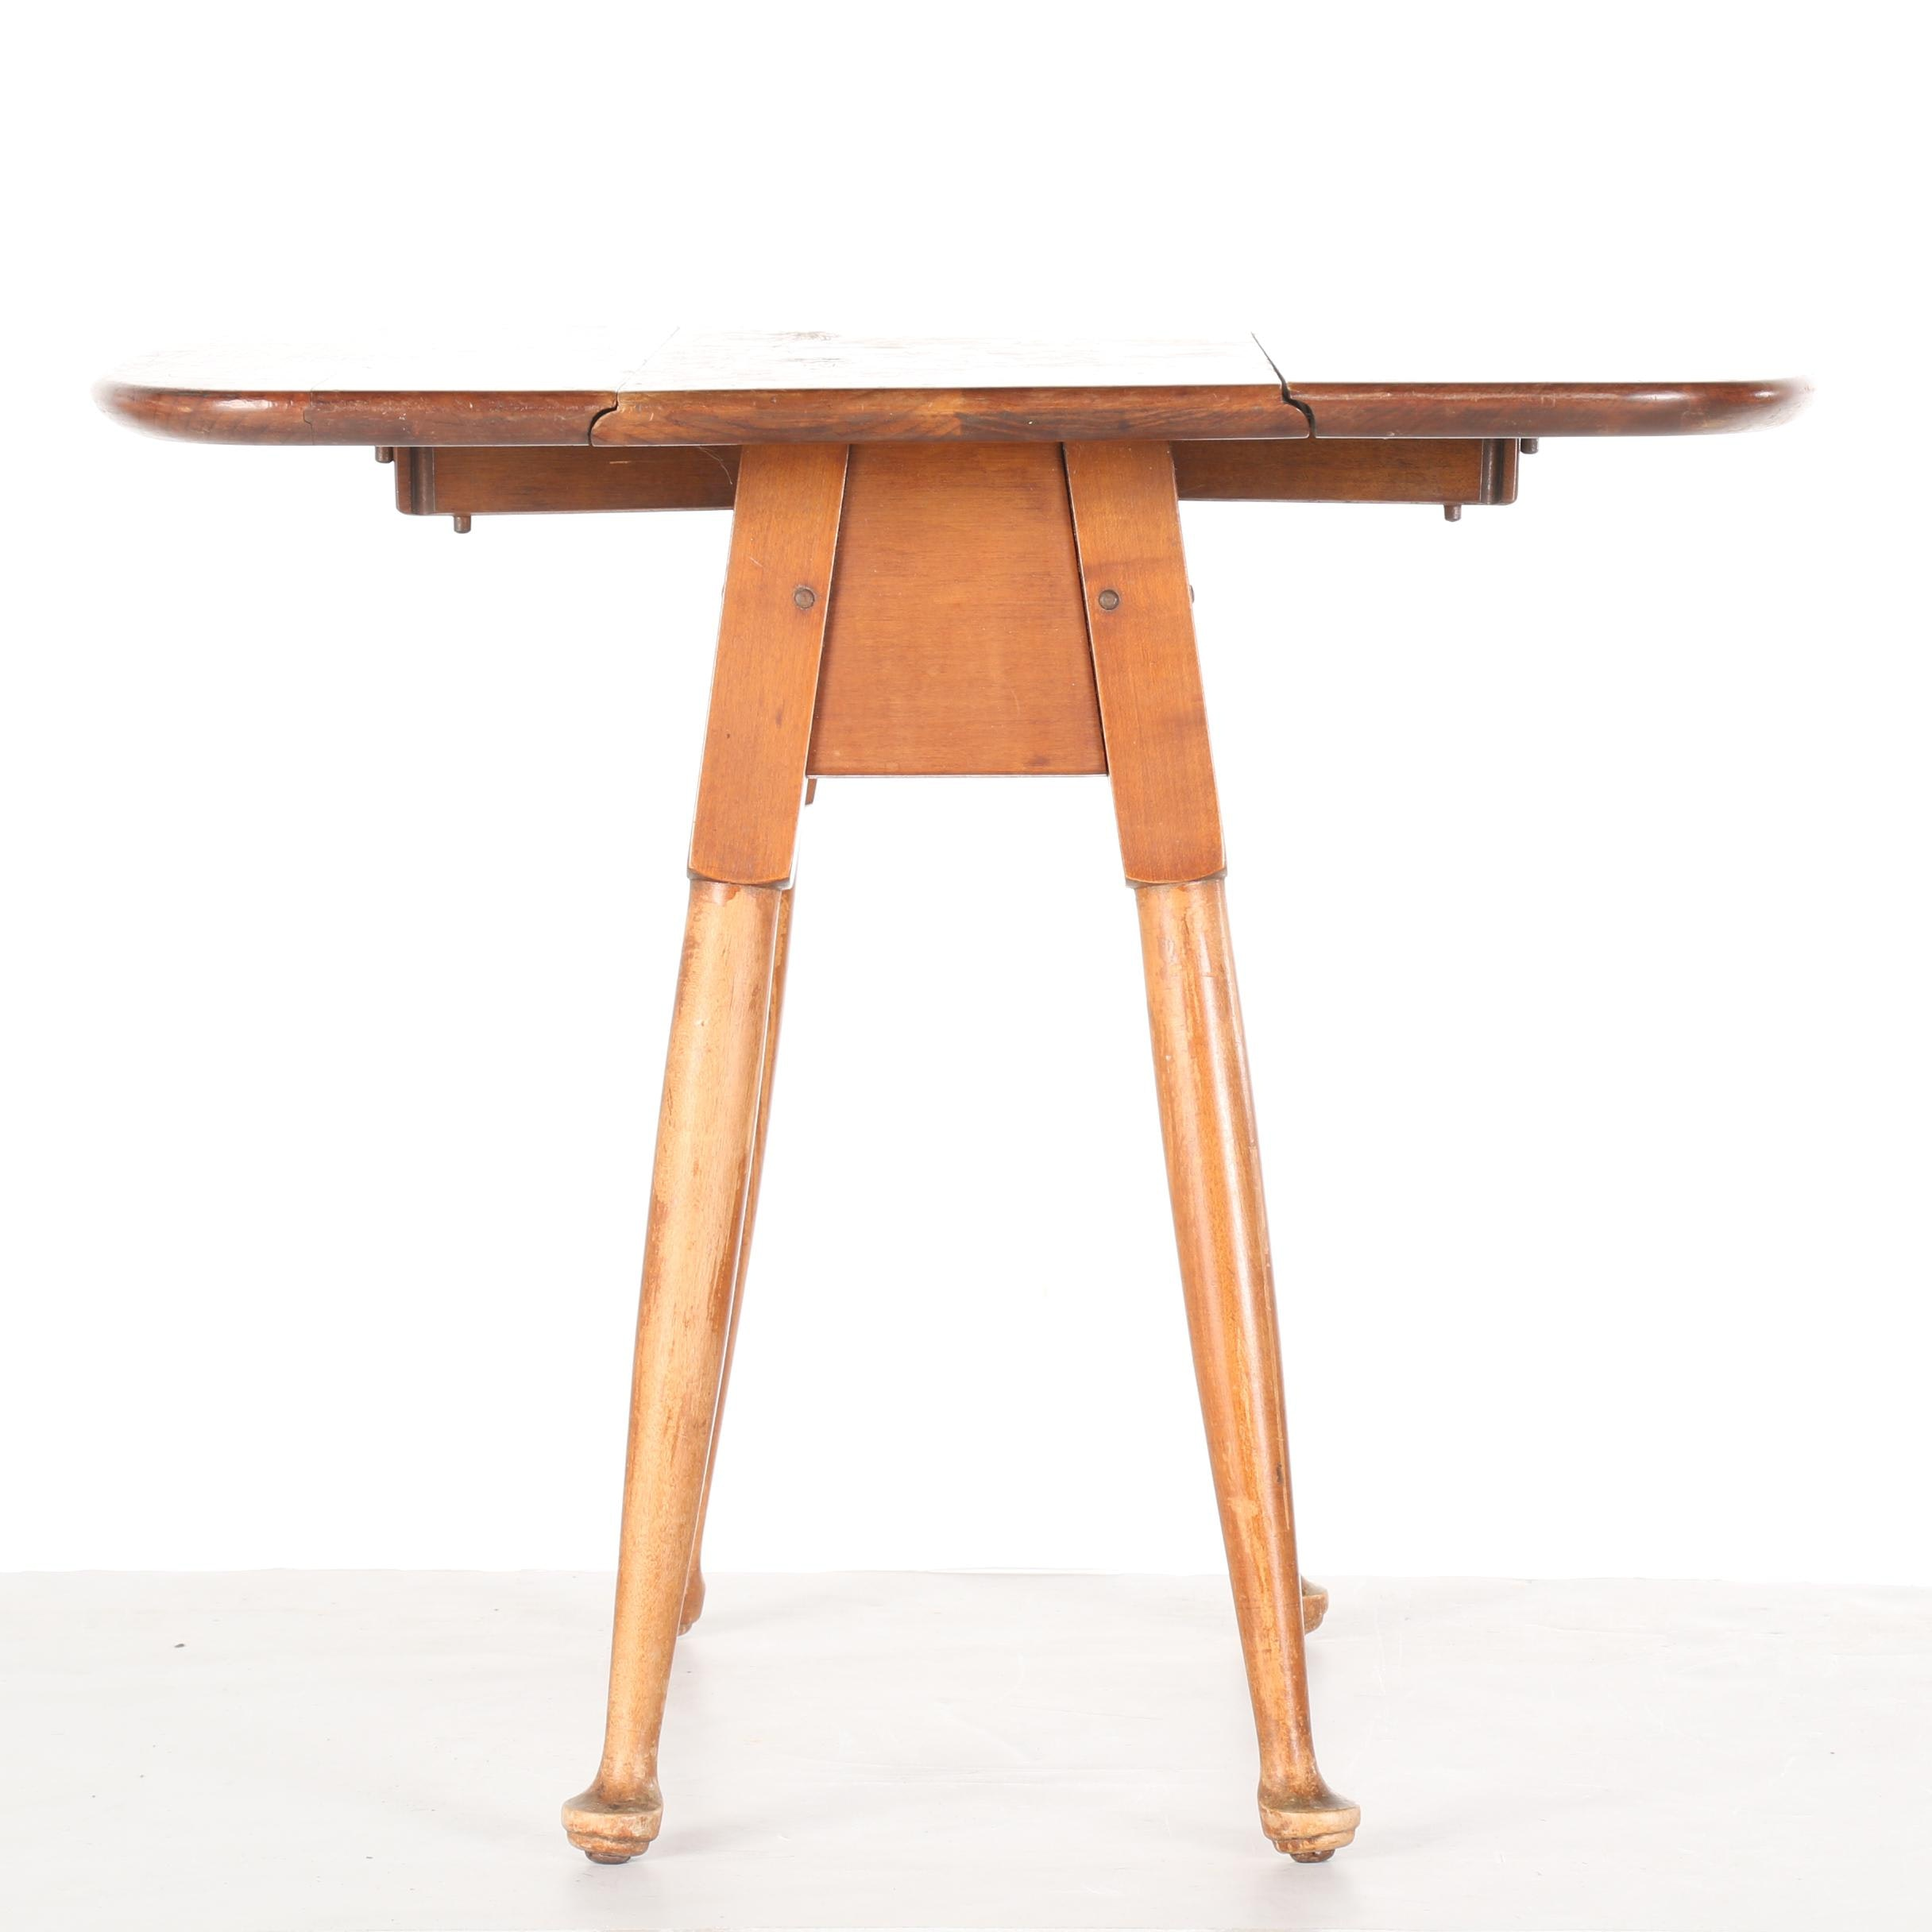 Vintage Miniature Queen Anne Style Drop-Leaf Table by Stickley